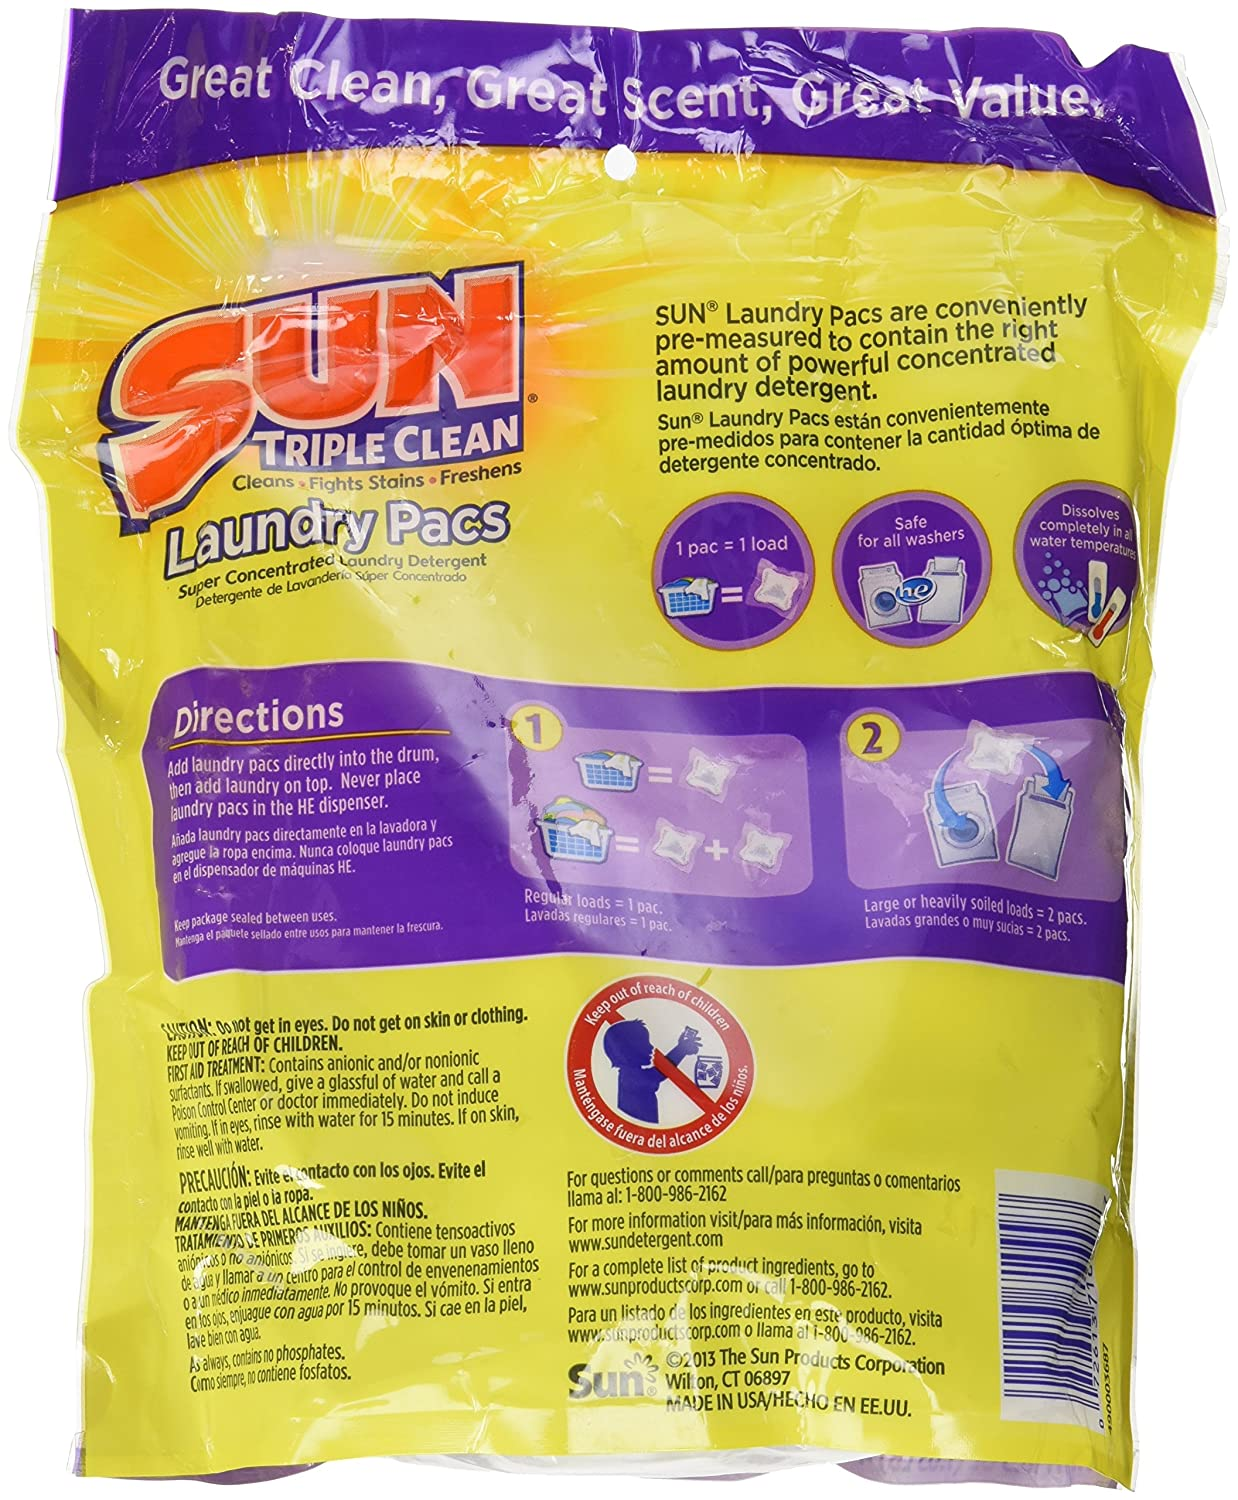 Amazon.com: SUN Triple Clean Laundry Pacs 24 Loads 16.5 Oz. (Pack of 2) 48 Loads Total: Health & Personal Care